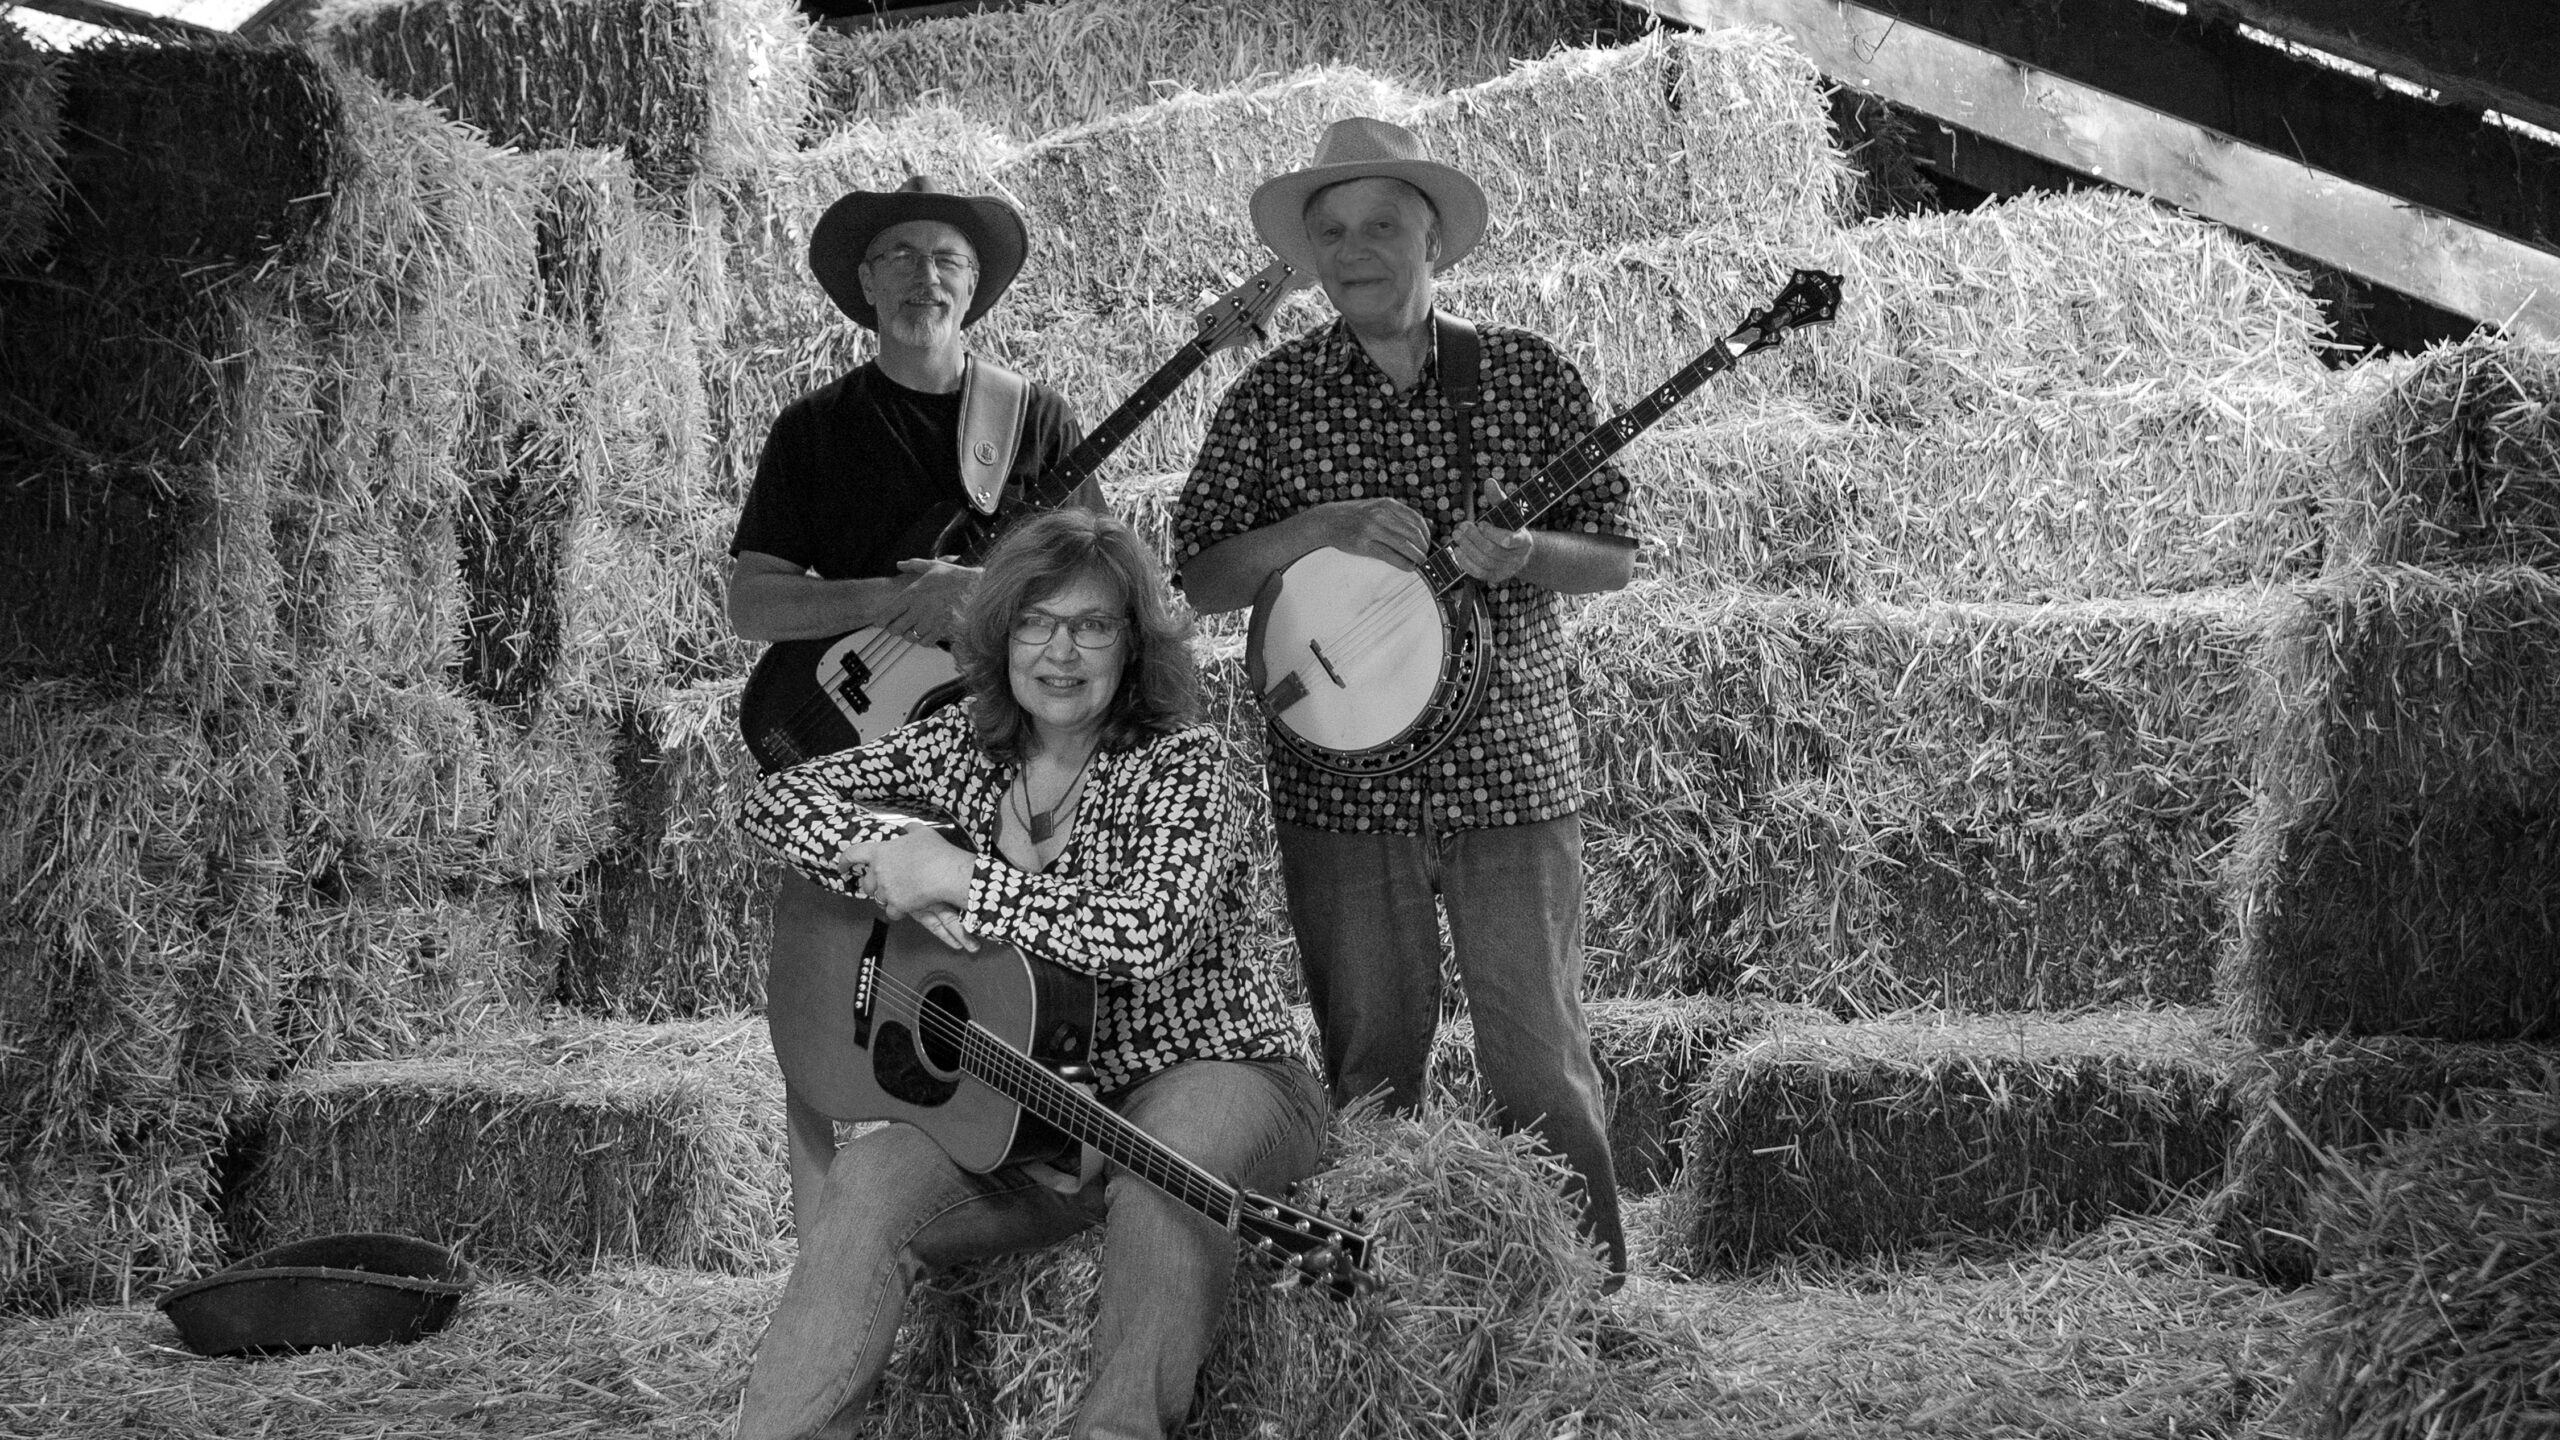 Kelly Planer & the Perks – Saturday 12:15pm – 1:30pm